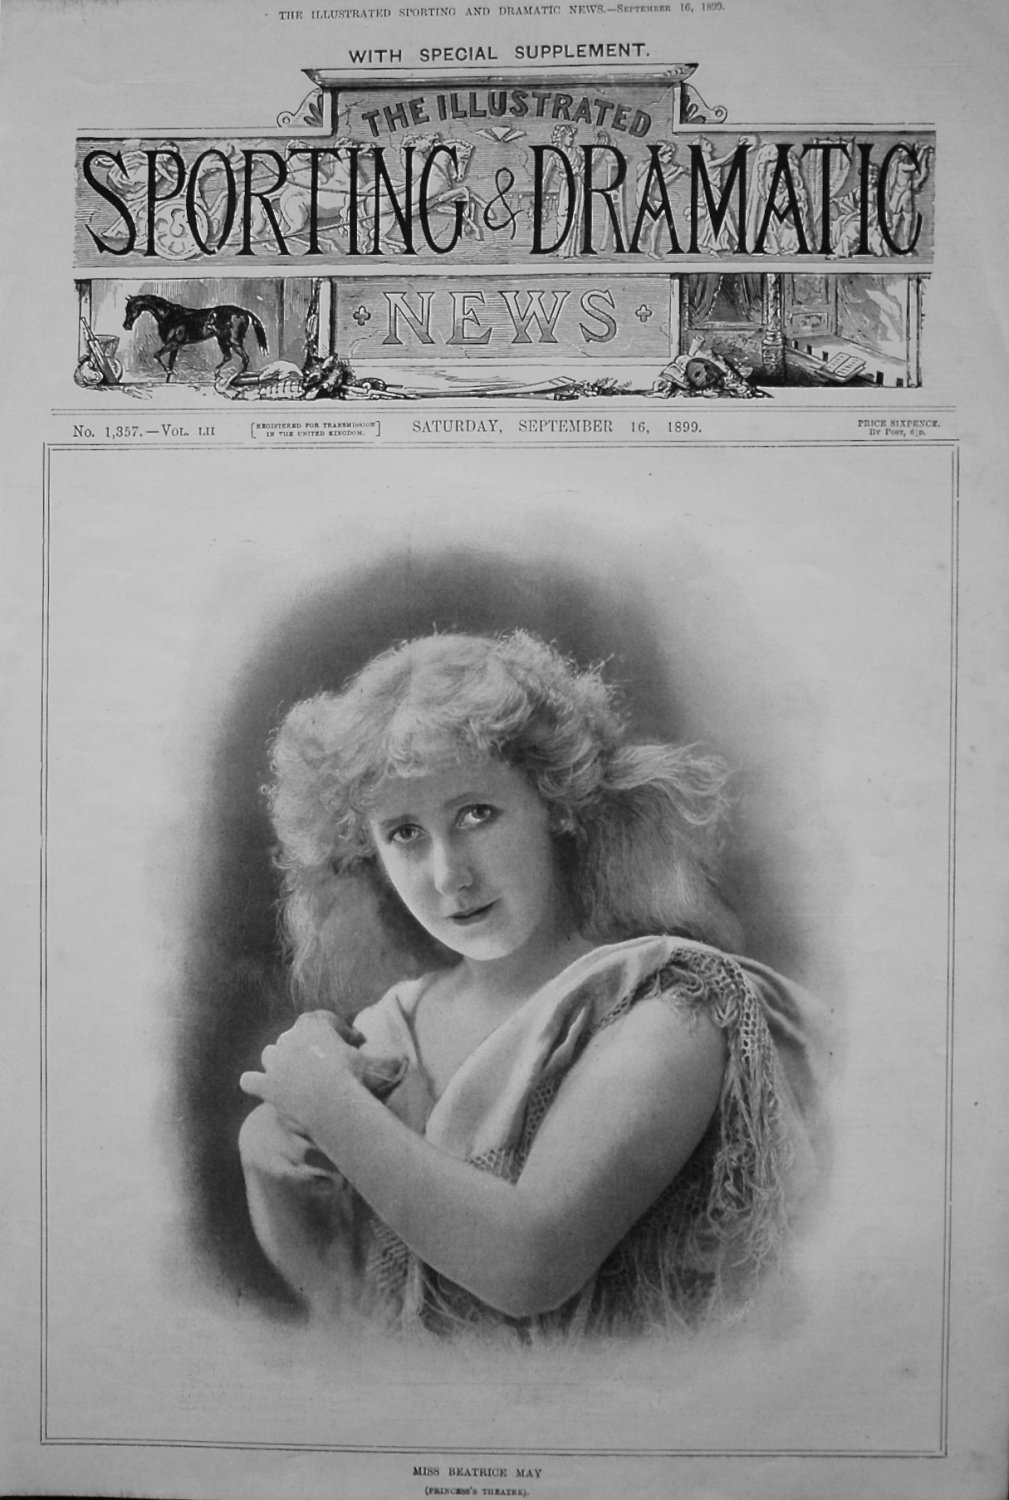 Miss Beatrice May. (Princess's Theatre). 1899